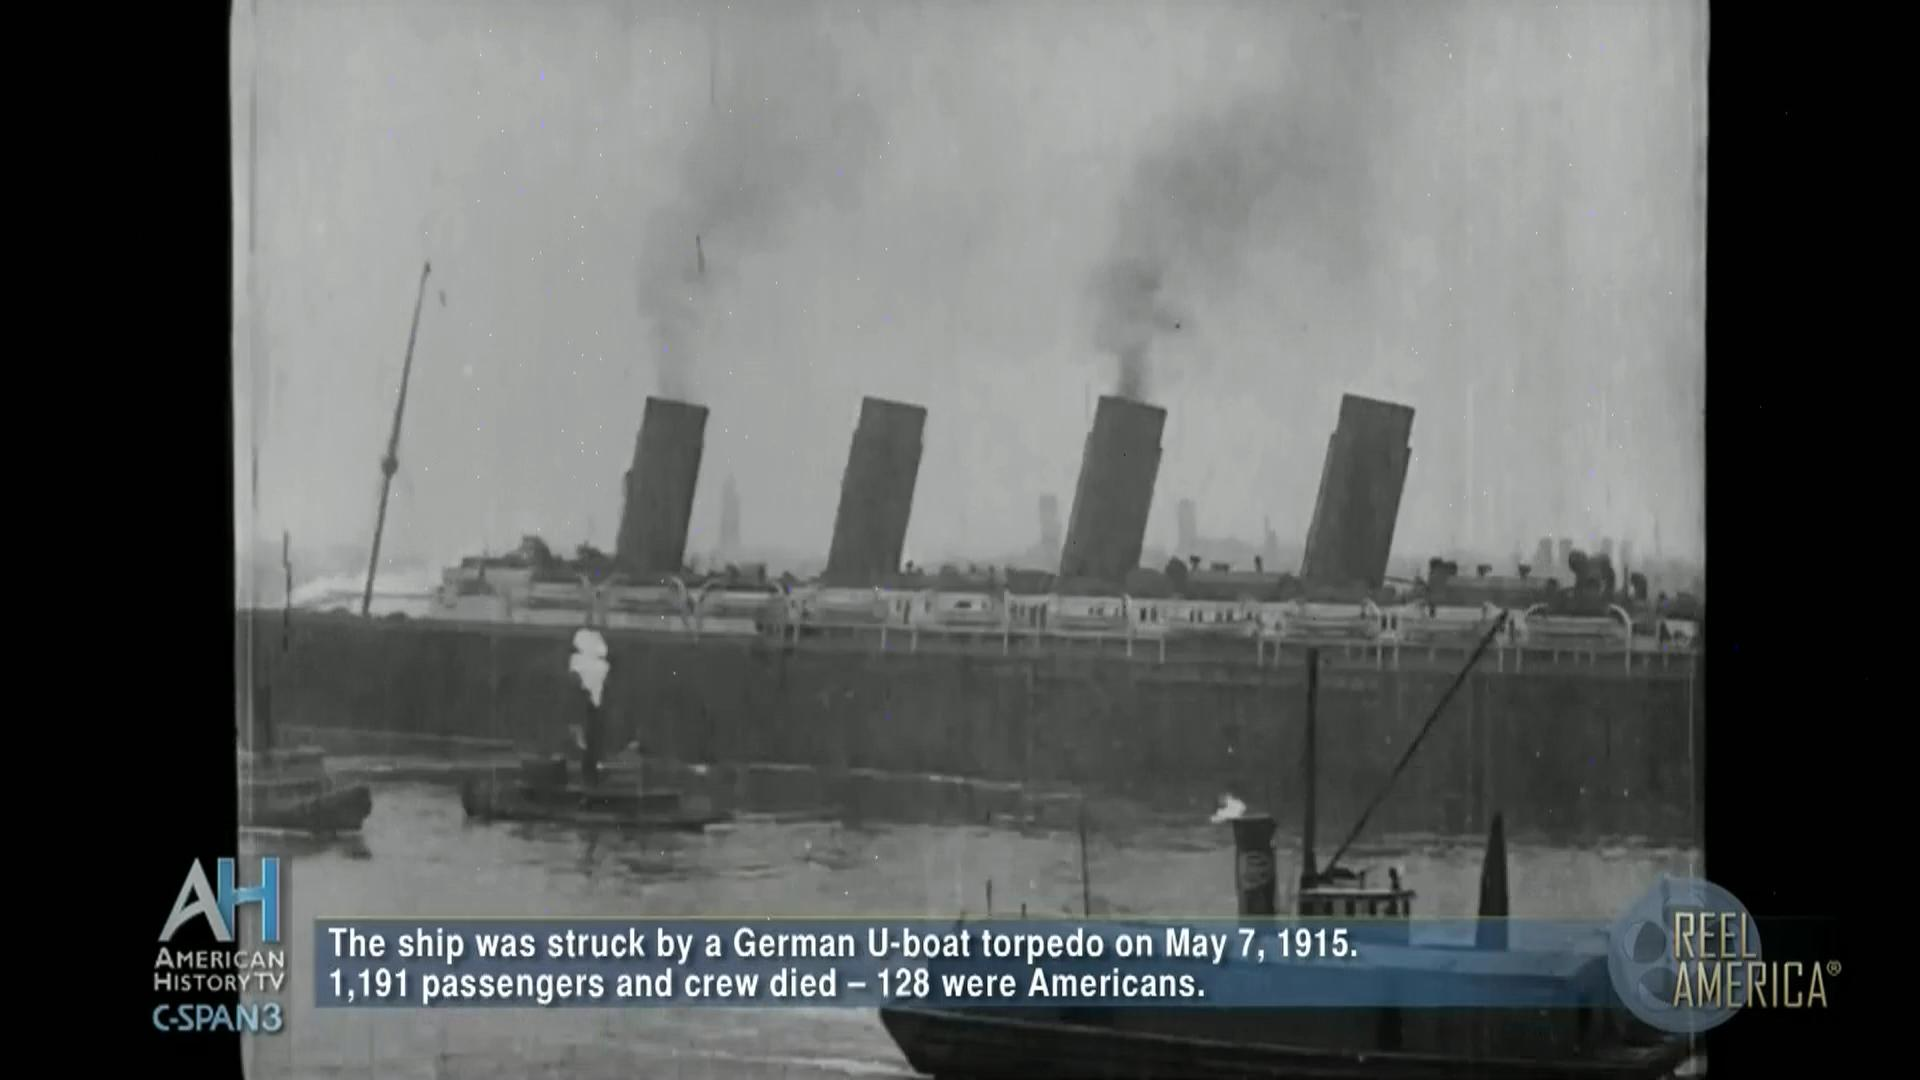 Rms Lusitania Departing New York City On Final Voyage C Spanorg